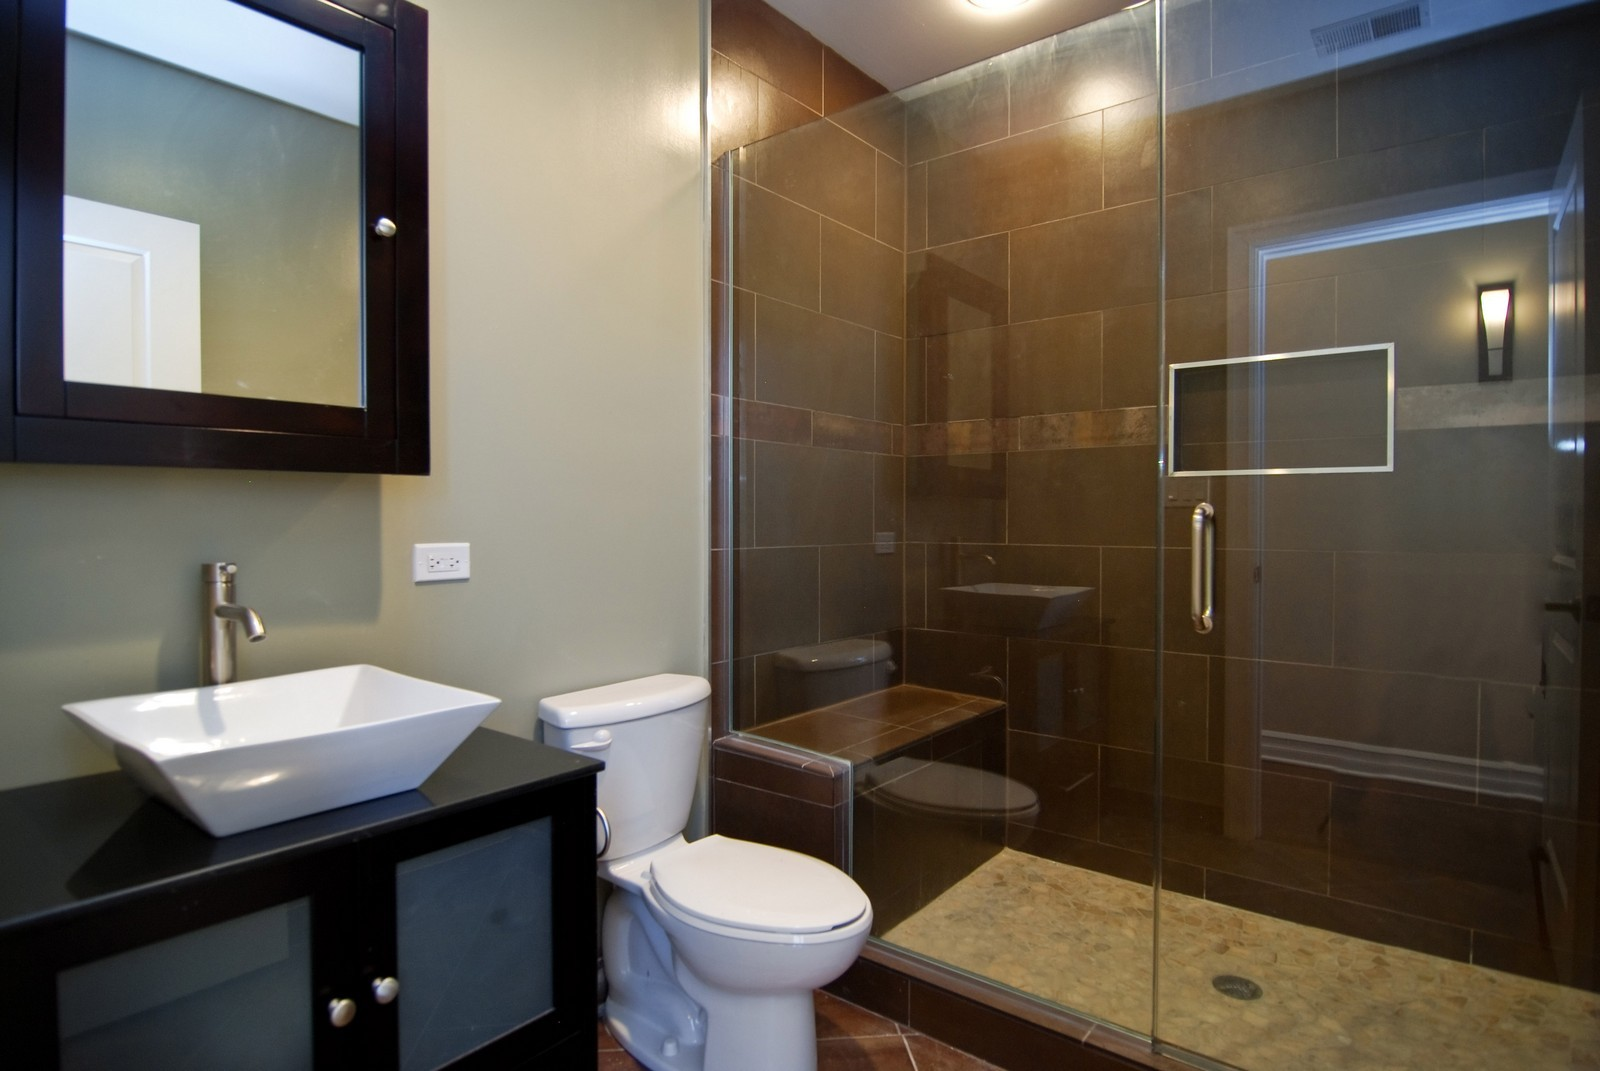 Real Estate Photography - 1744 W Augusta, Chicago, IL, 60622 - Bathroom